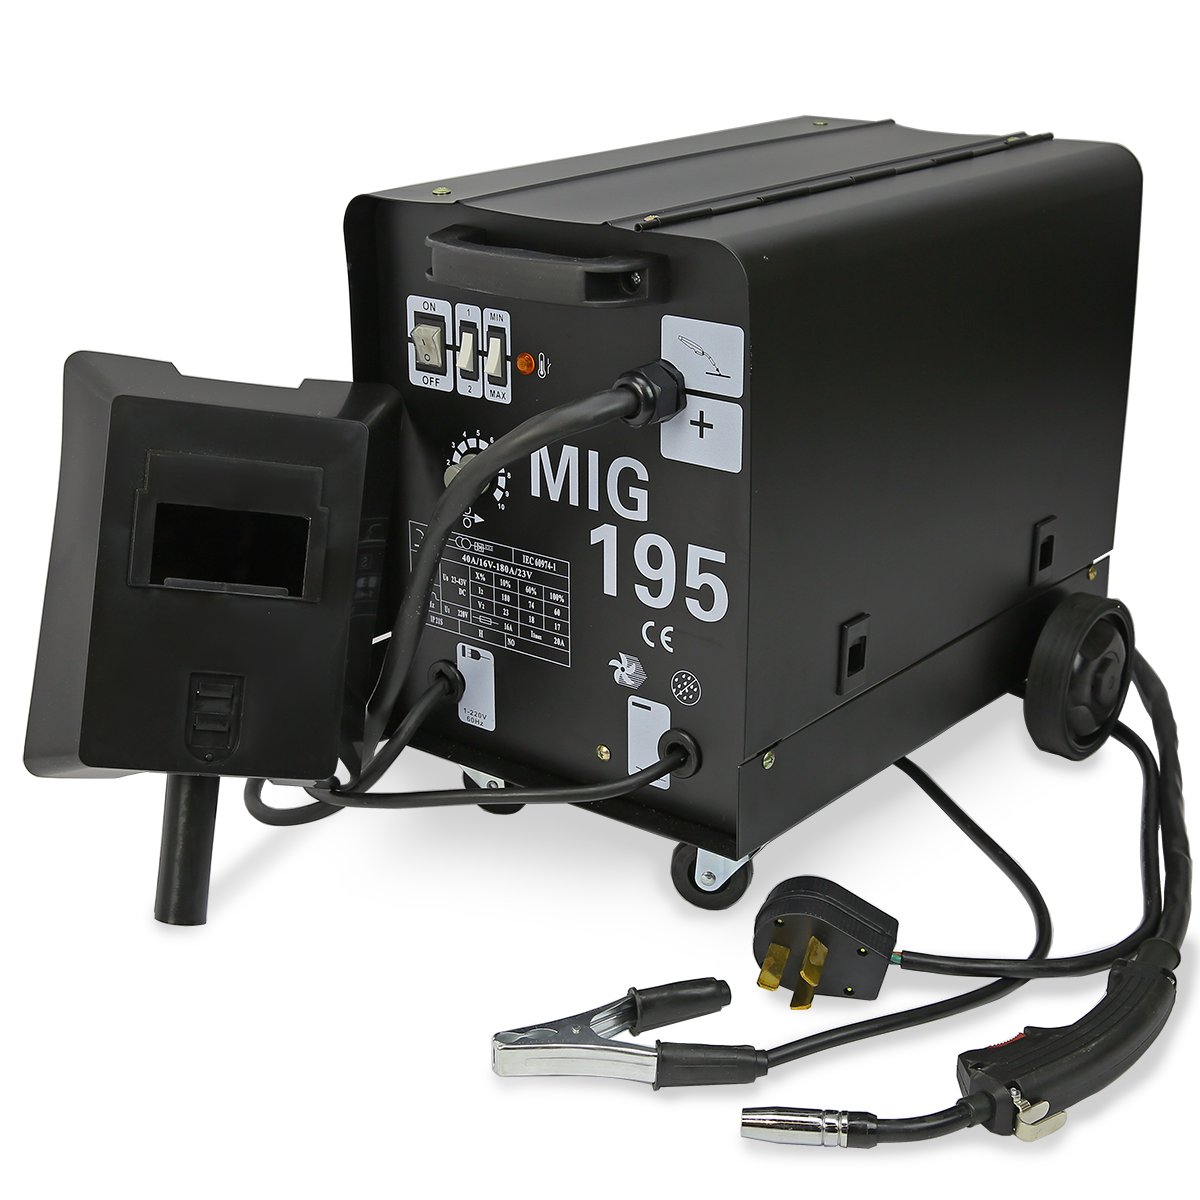 MIG-195 MIG Series Gas-Less Flux Core Wire Welder Welding Machine Automatic Feed Unit DIY